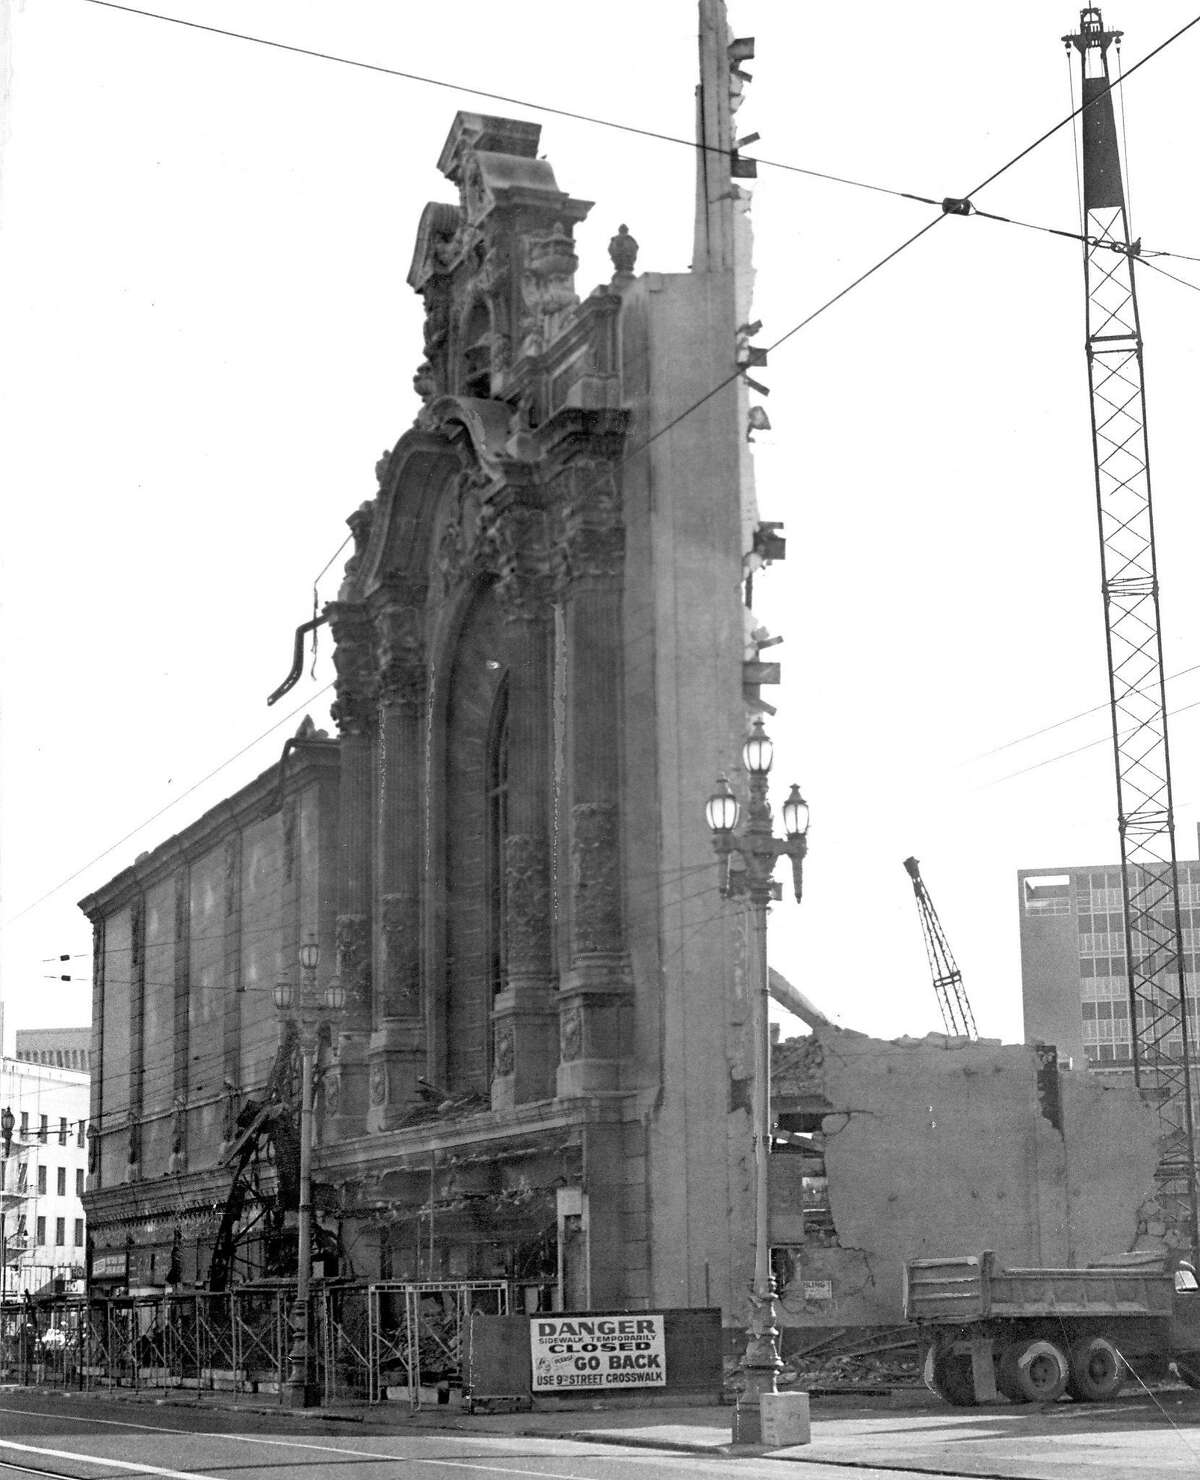 The Fox Theatre on Market Street is torn down to make way for an office building. July 26, 1963.